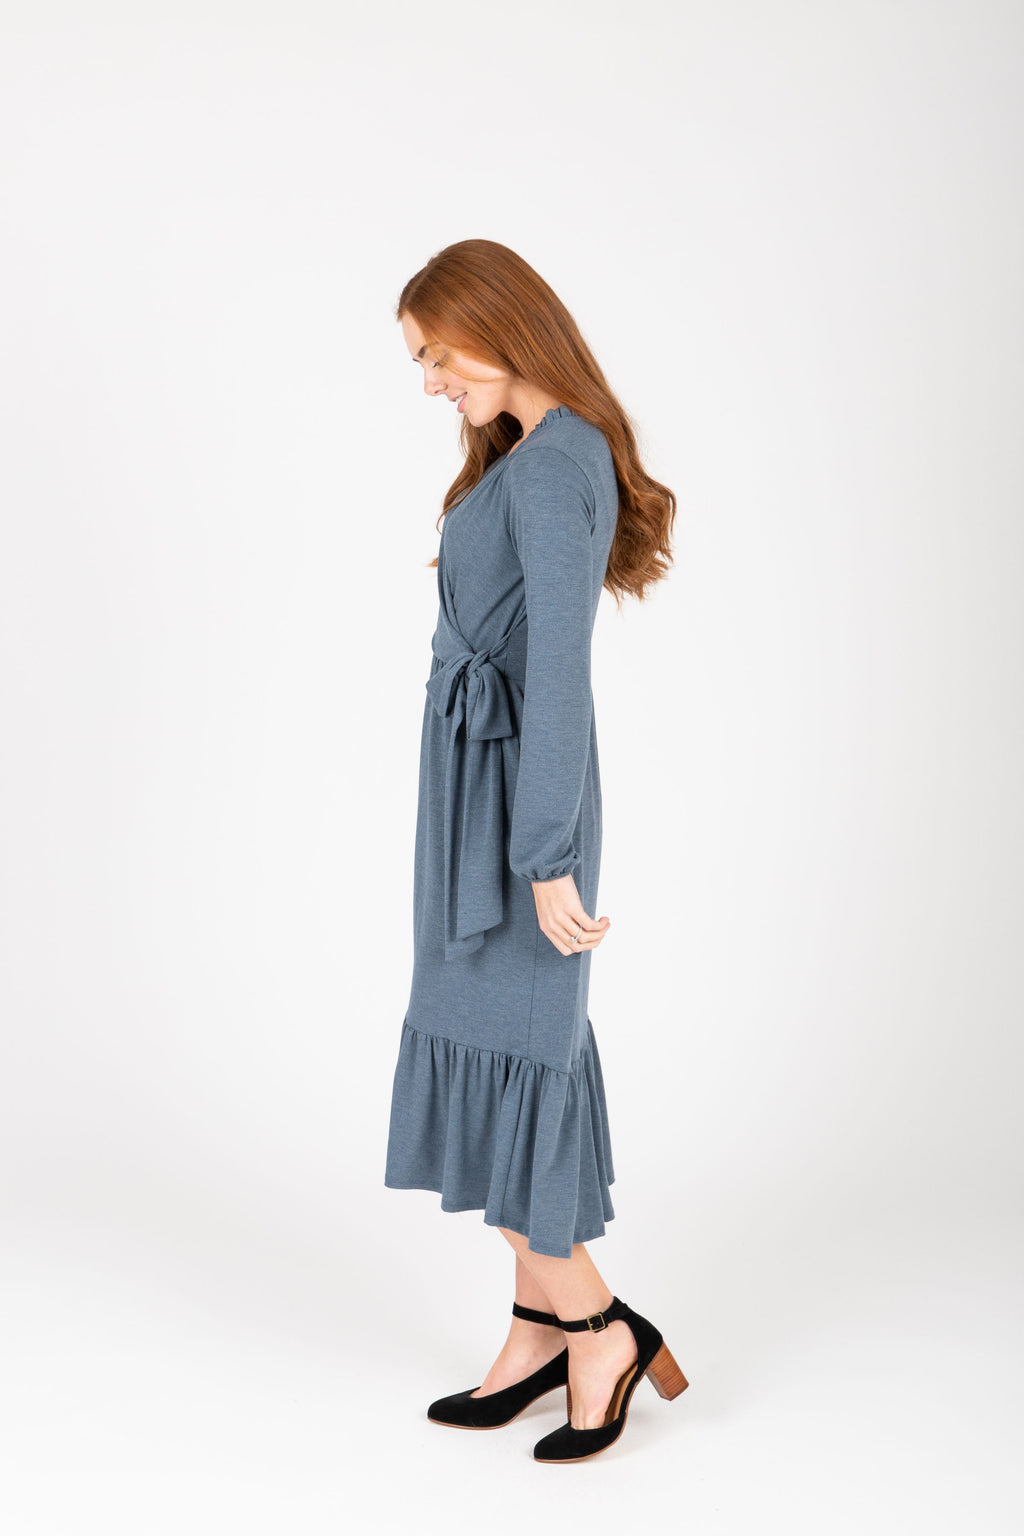 The Lorraine Ruffle Detail Dress in Denim